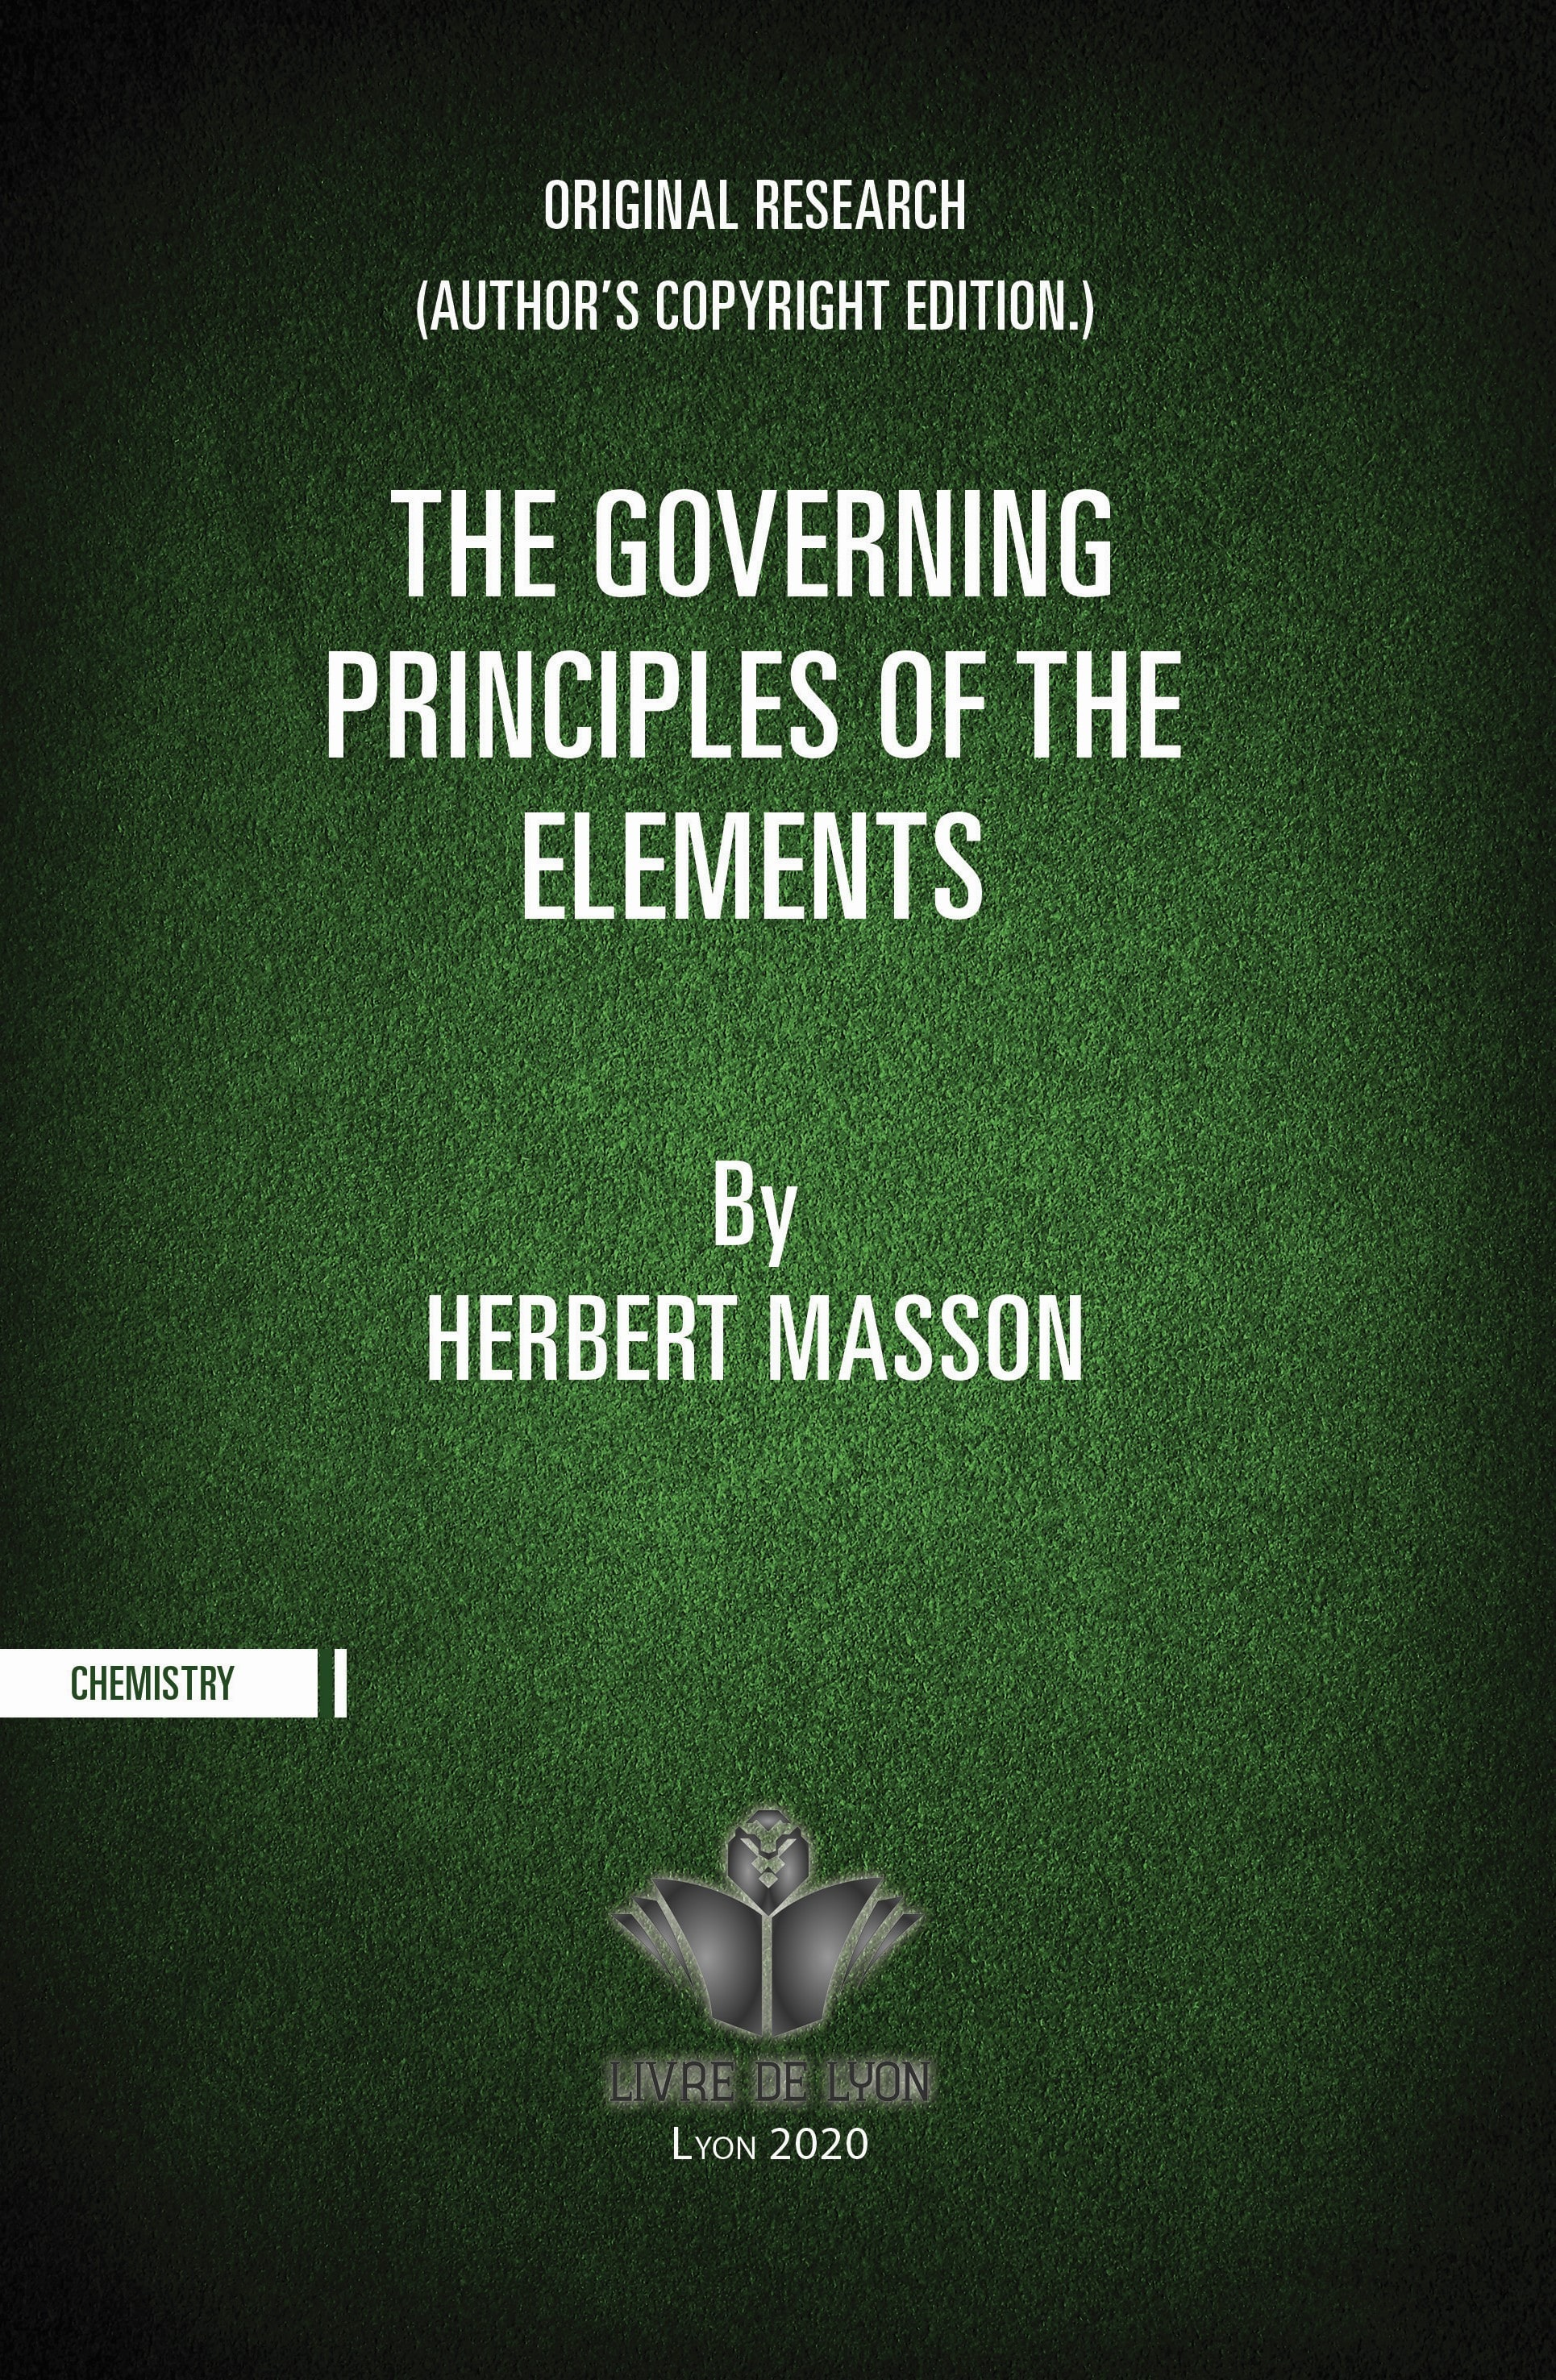 Original Research the Governing Principles of the Elements